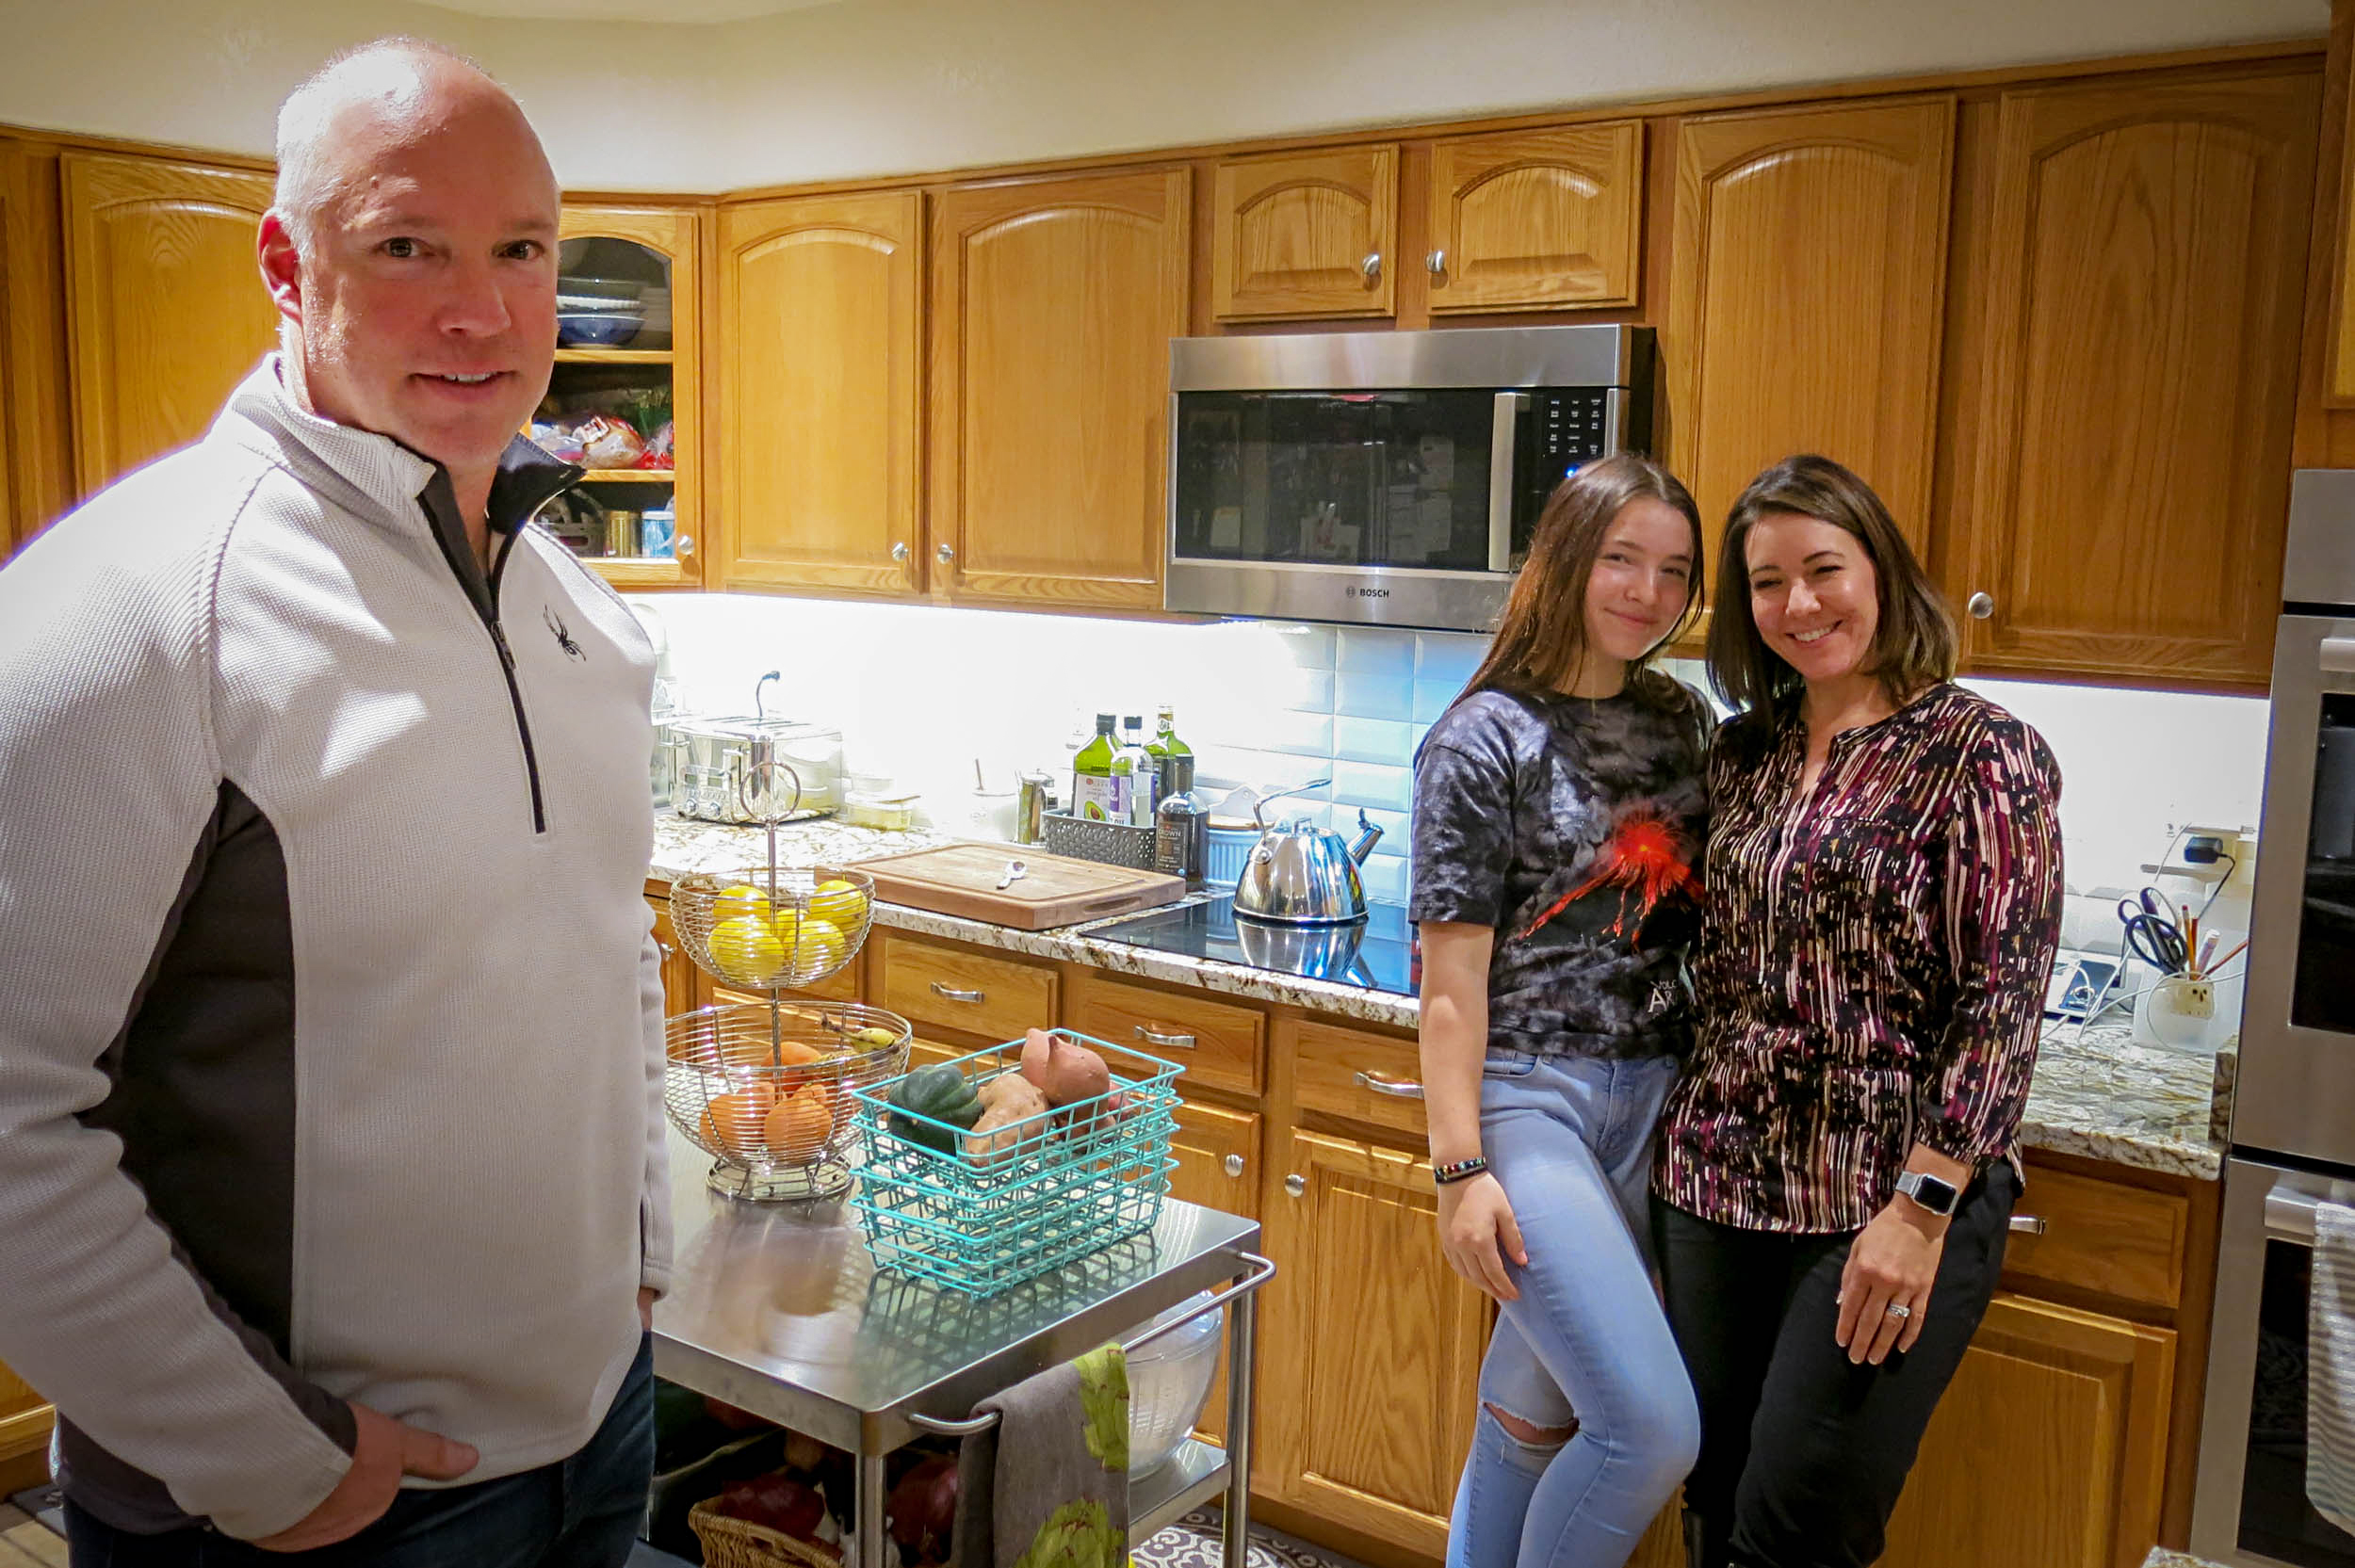 State lawmaker Kevin Priola, his daughter Bremma and wife Michelle in the kitchen of their home in Henderson, Nov. 22, 2019.  The Priolas have struggled to figure out how to deal with their 17-year-old son who has developed a serious vaping habit.